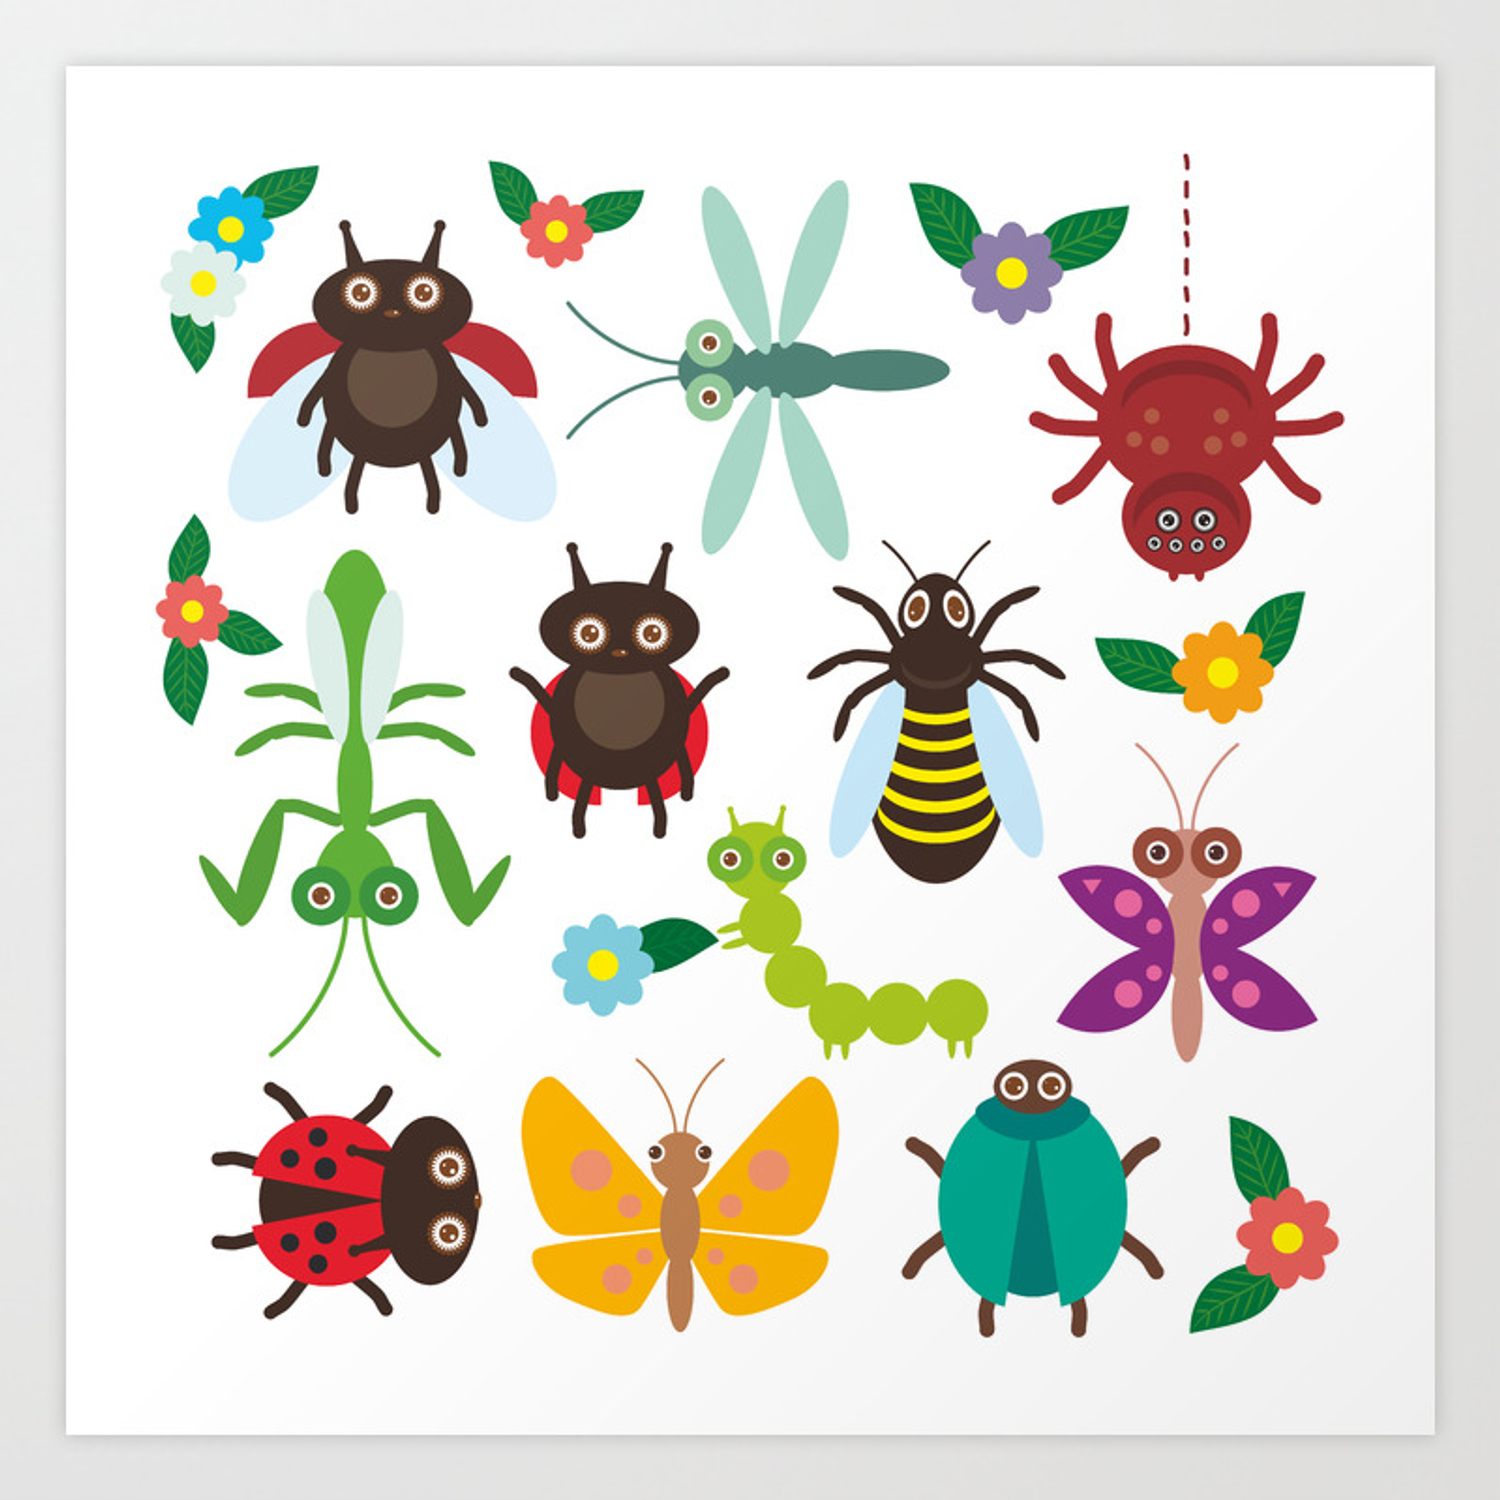 Funny Insects Spider Butterfly Caterpillar Dragonfly Mantis Beetle